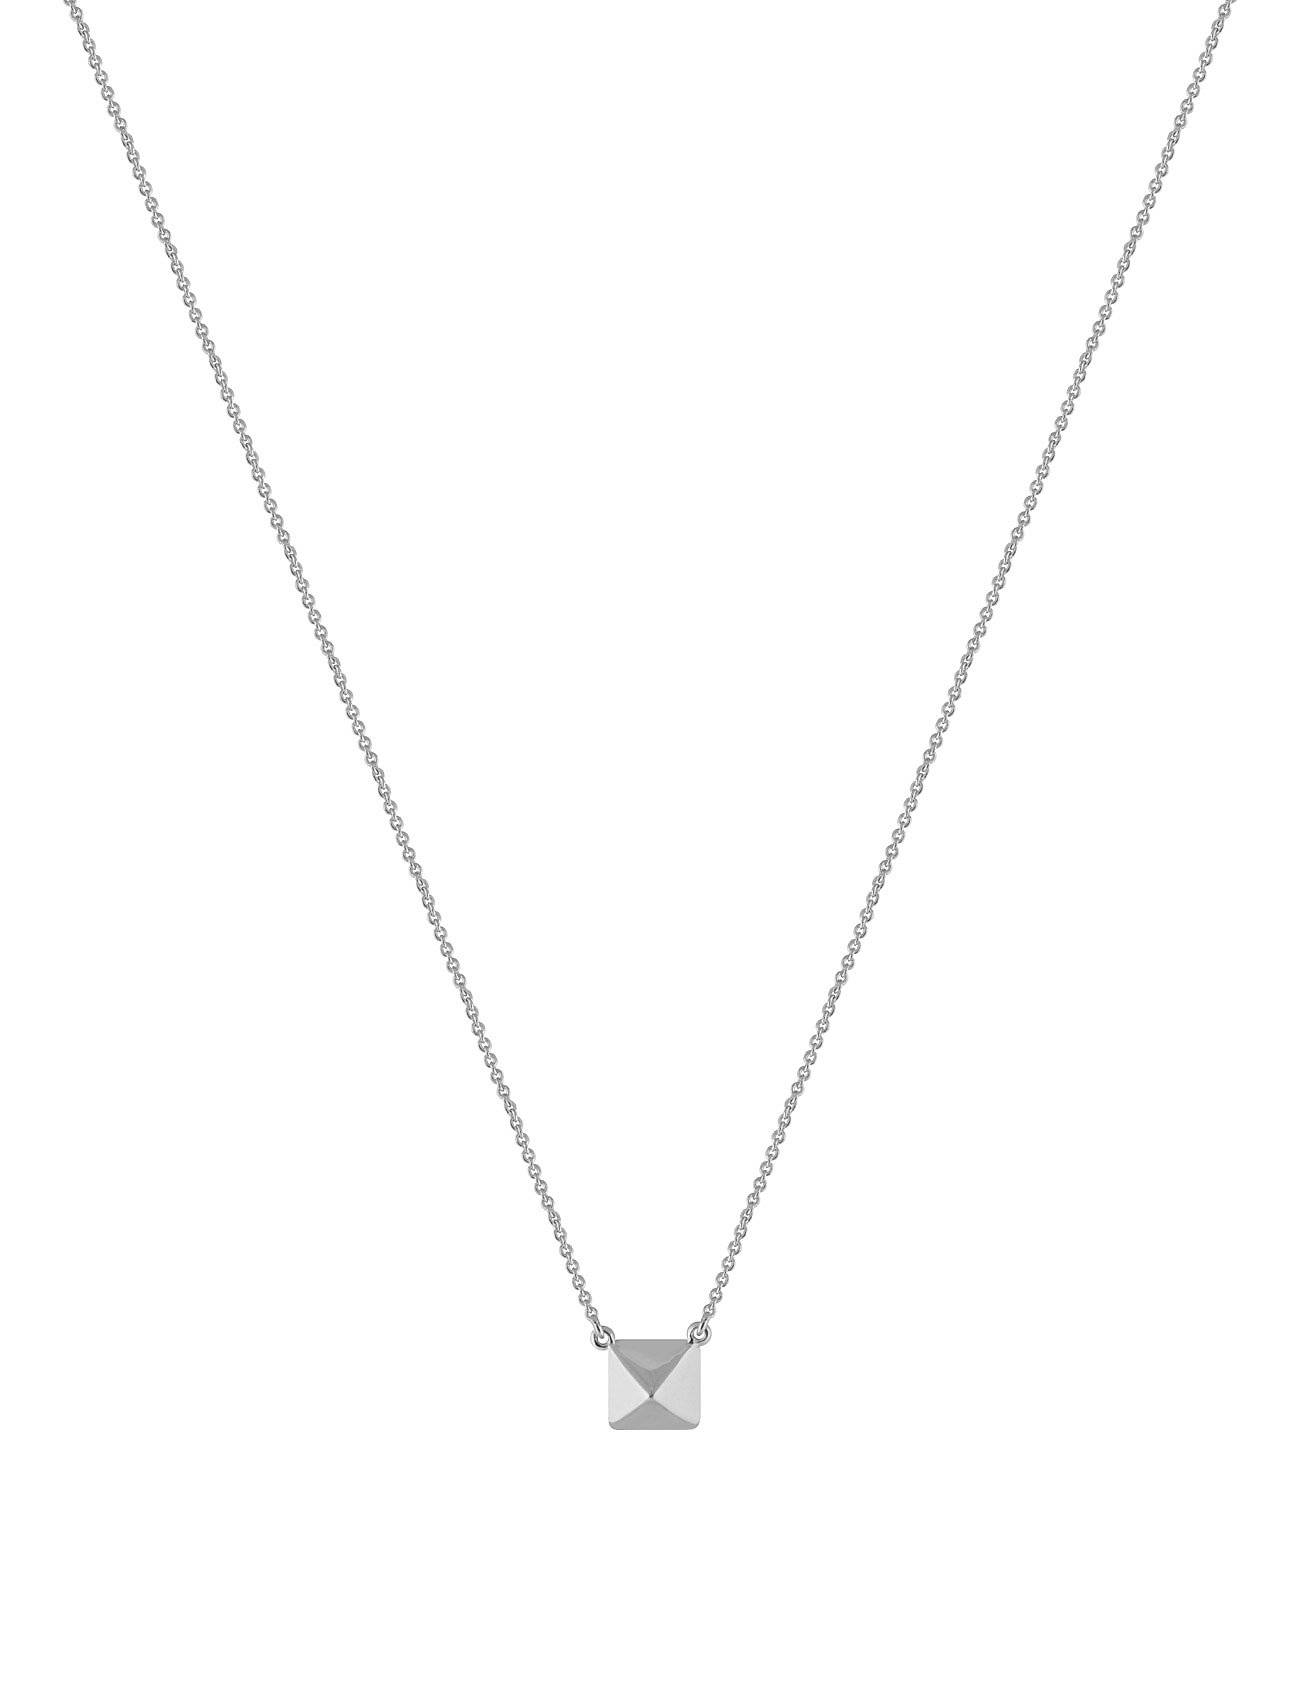 SOPHIE by SOPHIE Pyramid Necklace